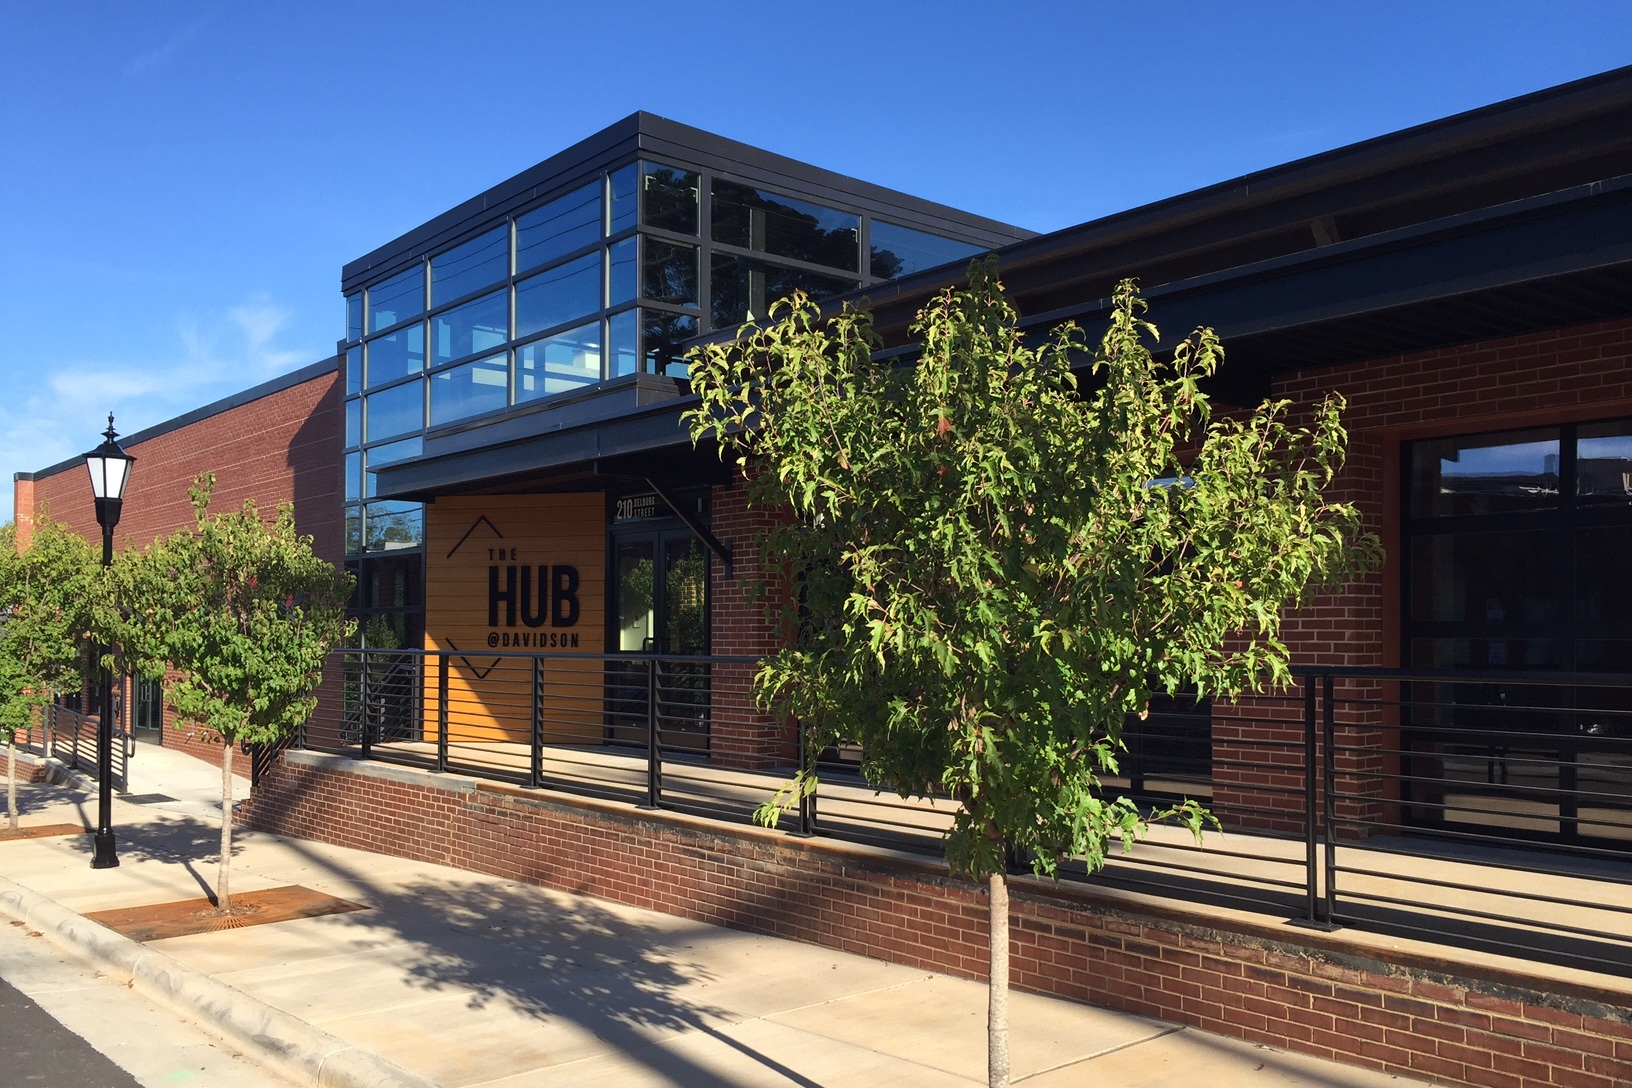 ADW-Office%2BMixed-Use-210-Deburg-Small-Incubator-Davidson-NC-Exterior+Front.jpg